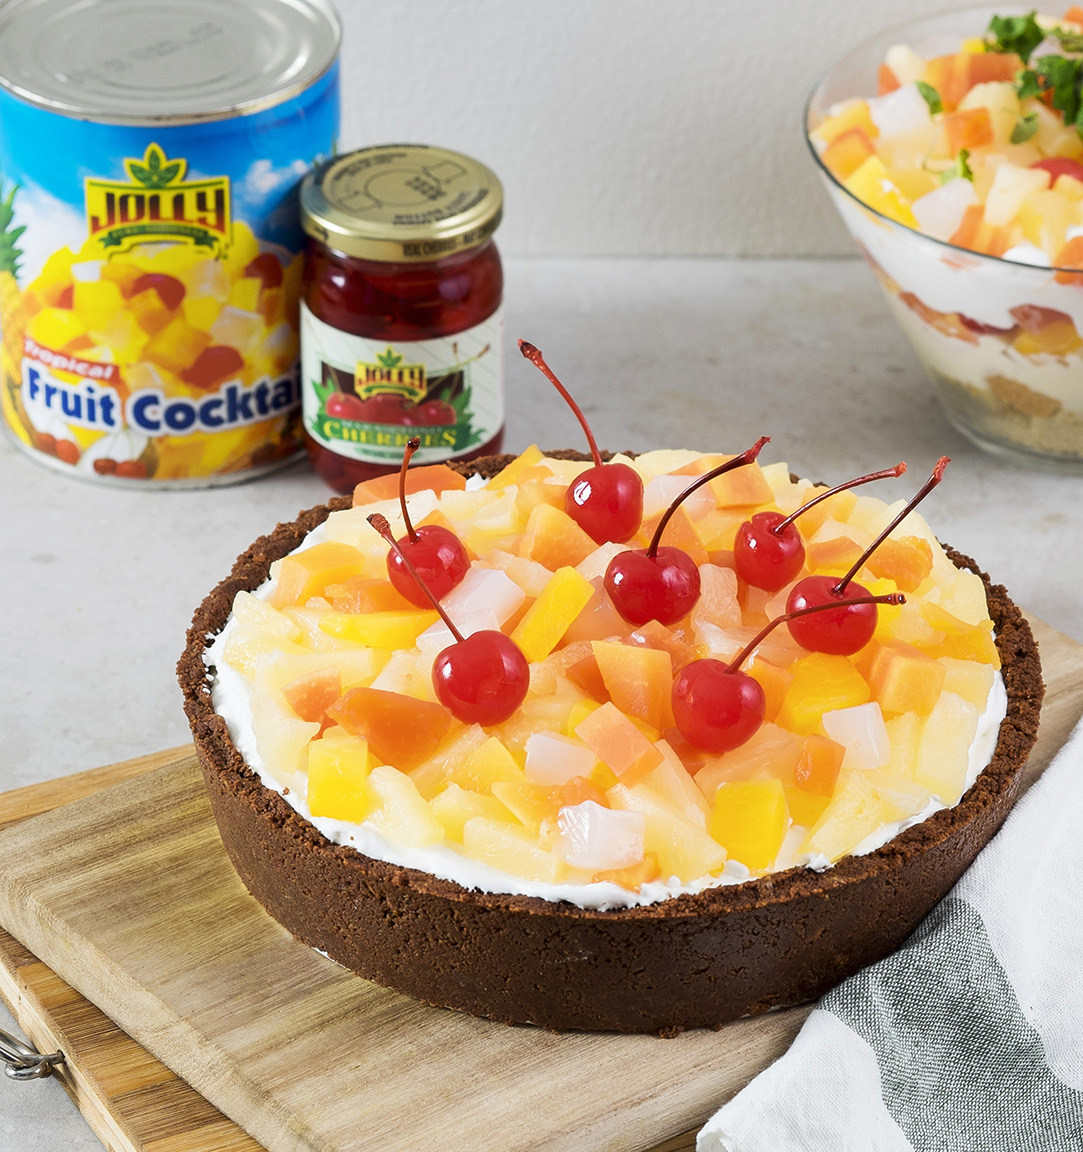 Jolly's No-bake Fruit Cocktail Pie